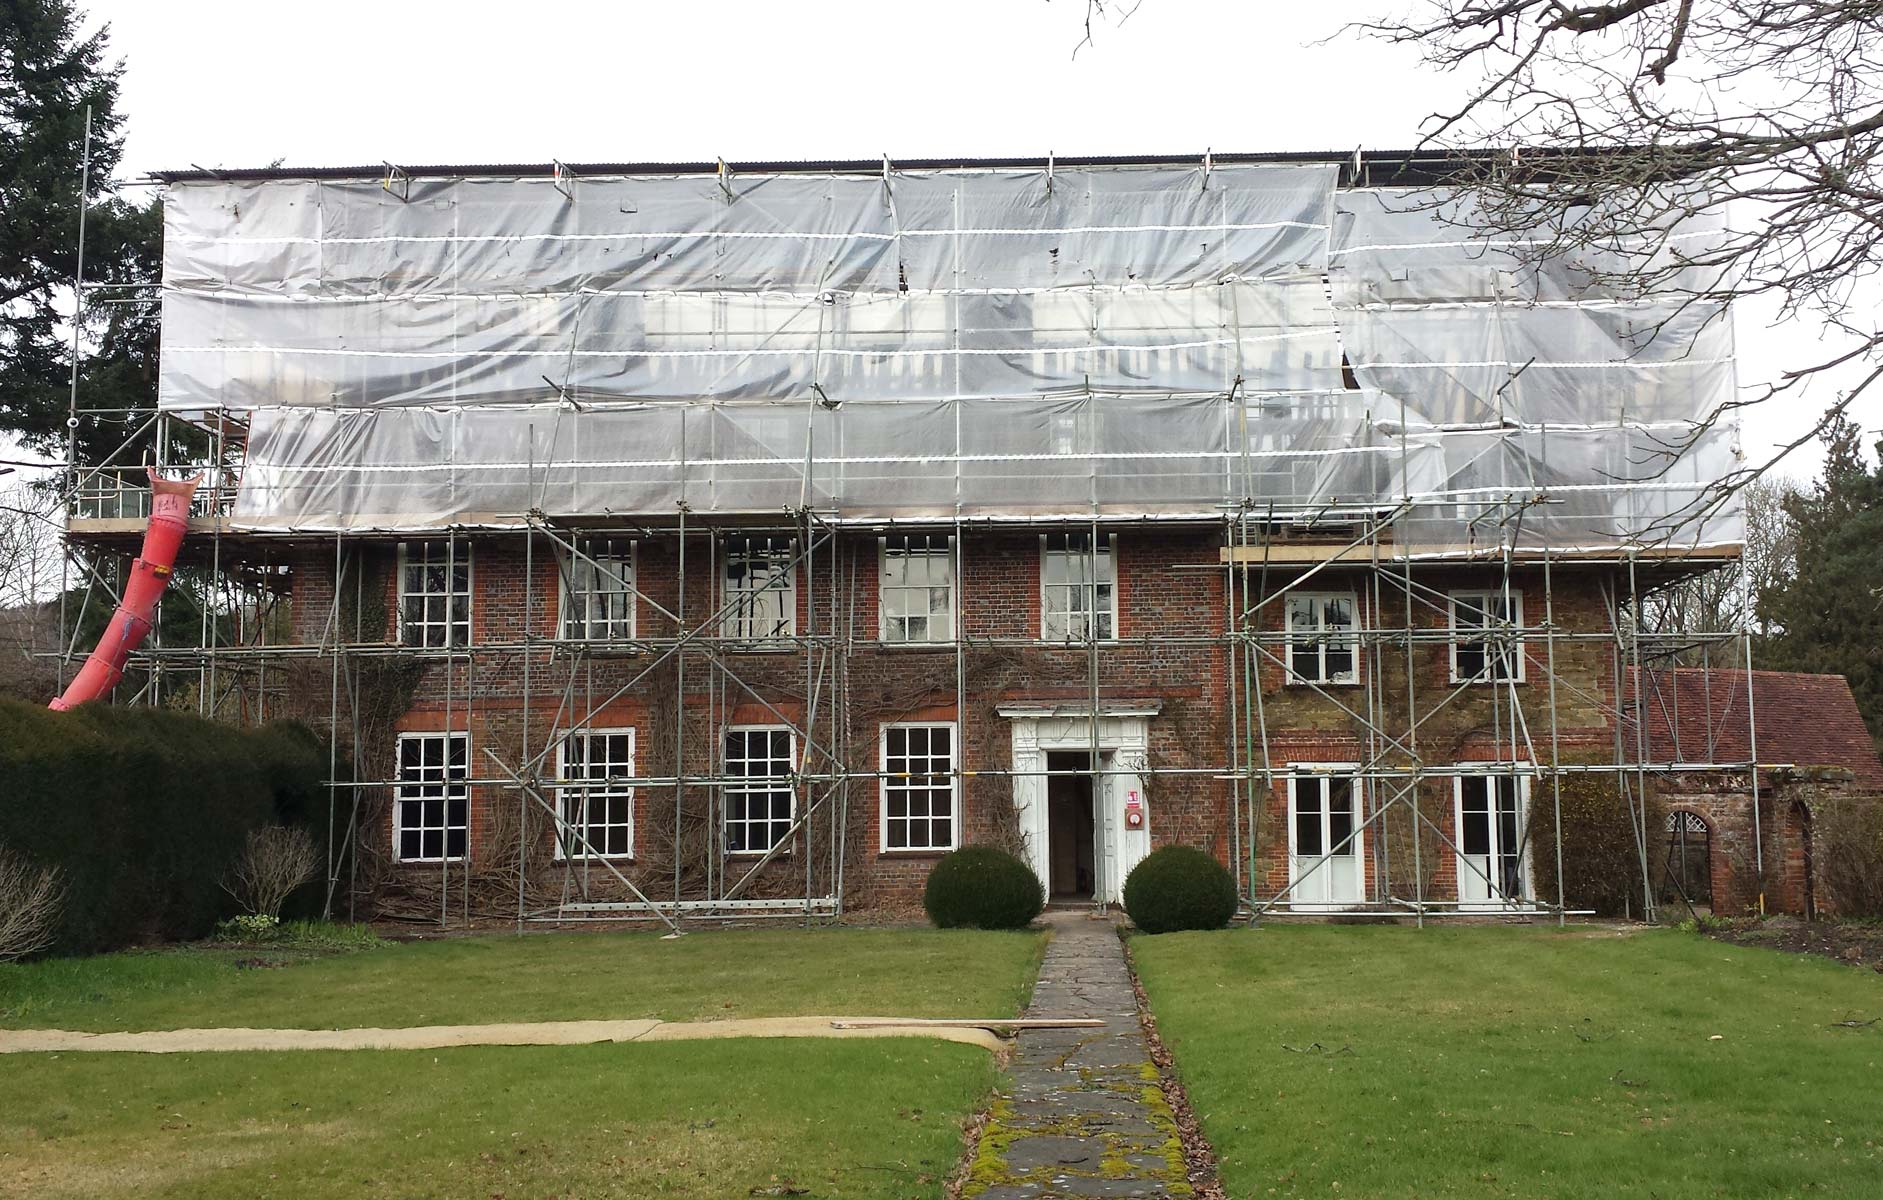 Grade 2 listed manor house work in progress KM Grant